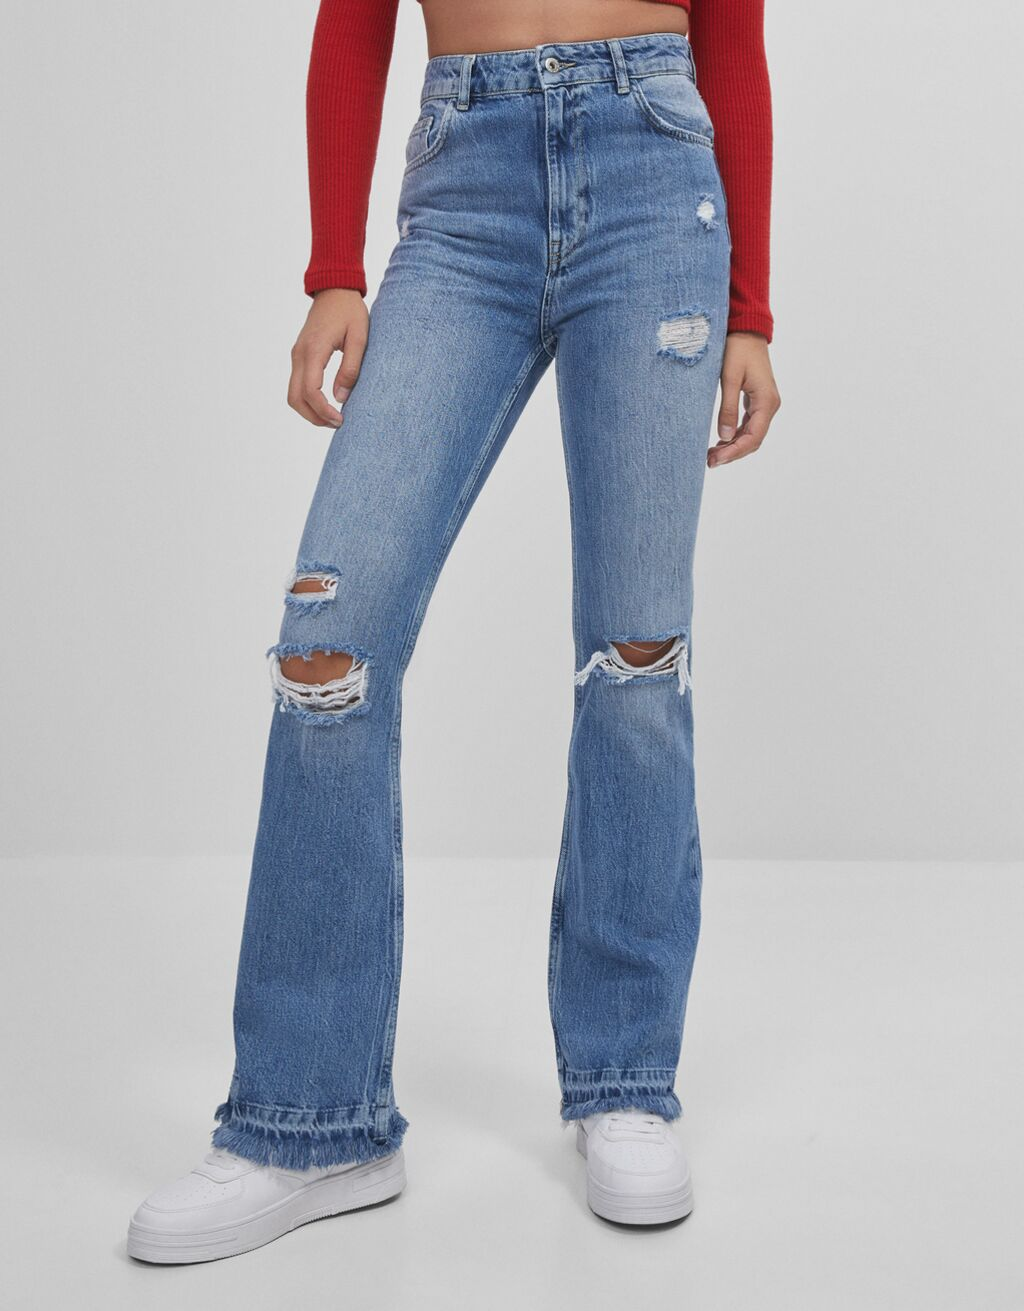 Flared jeans with rips